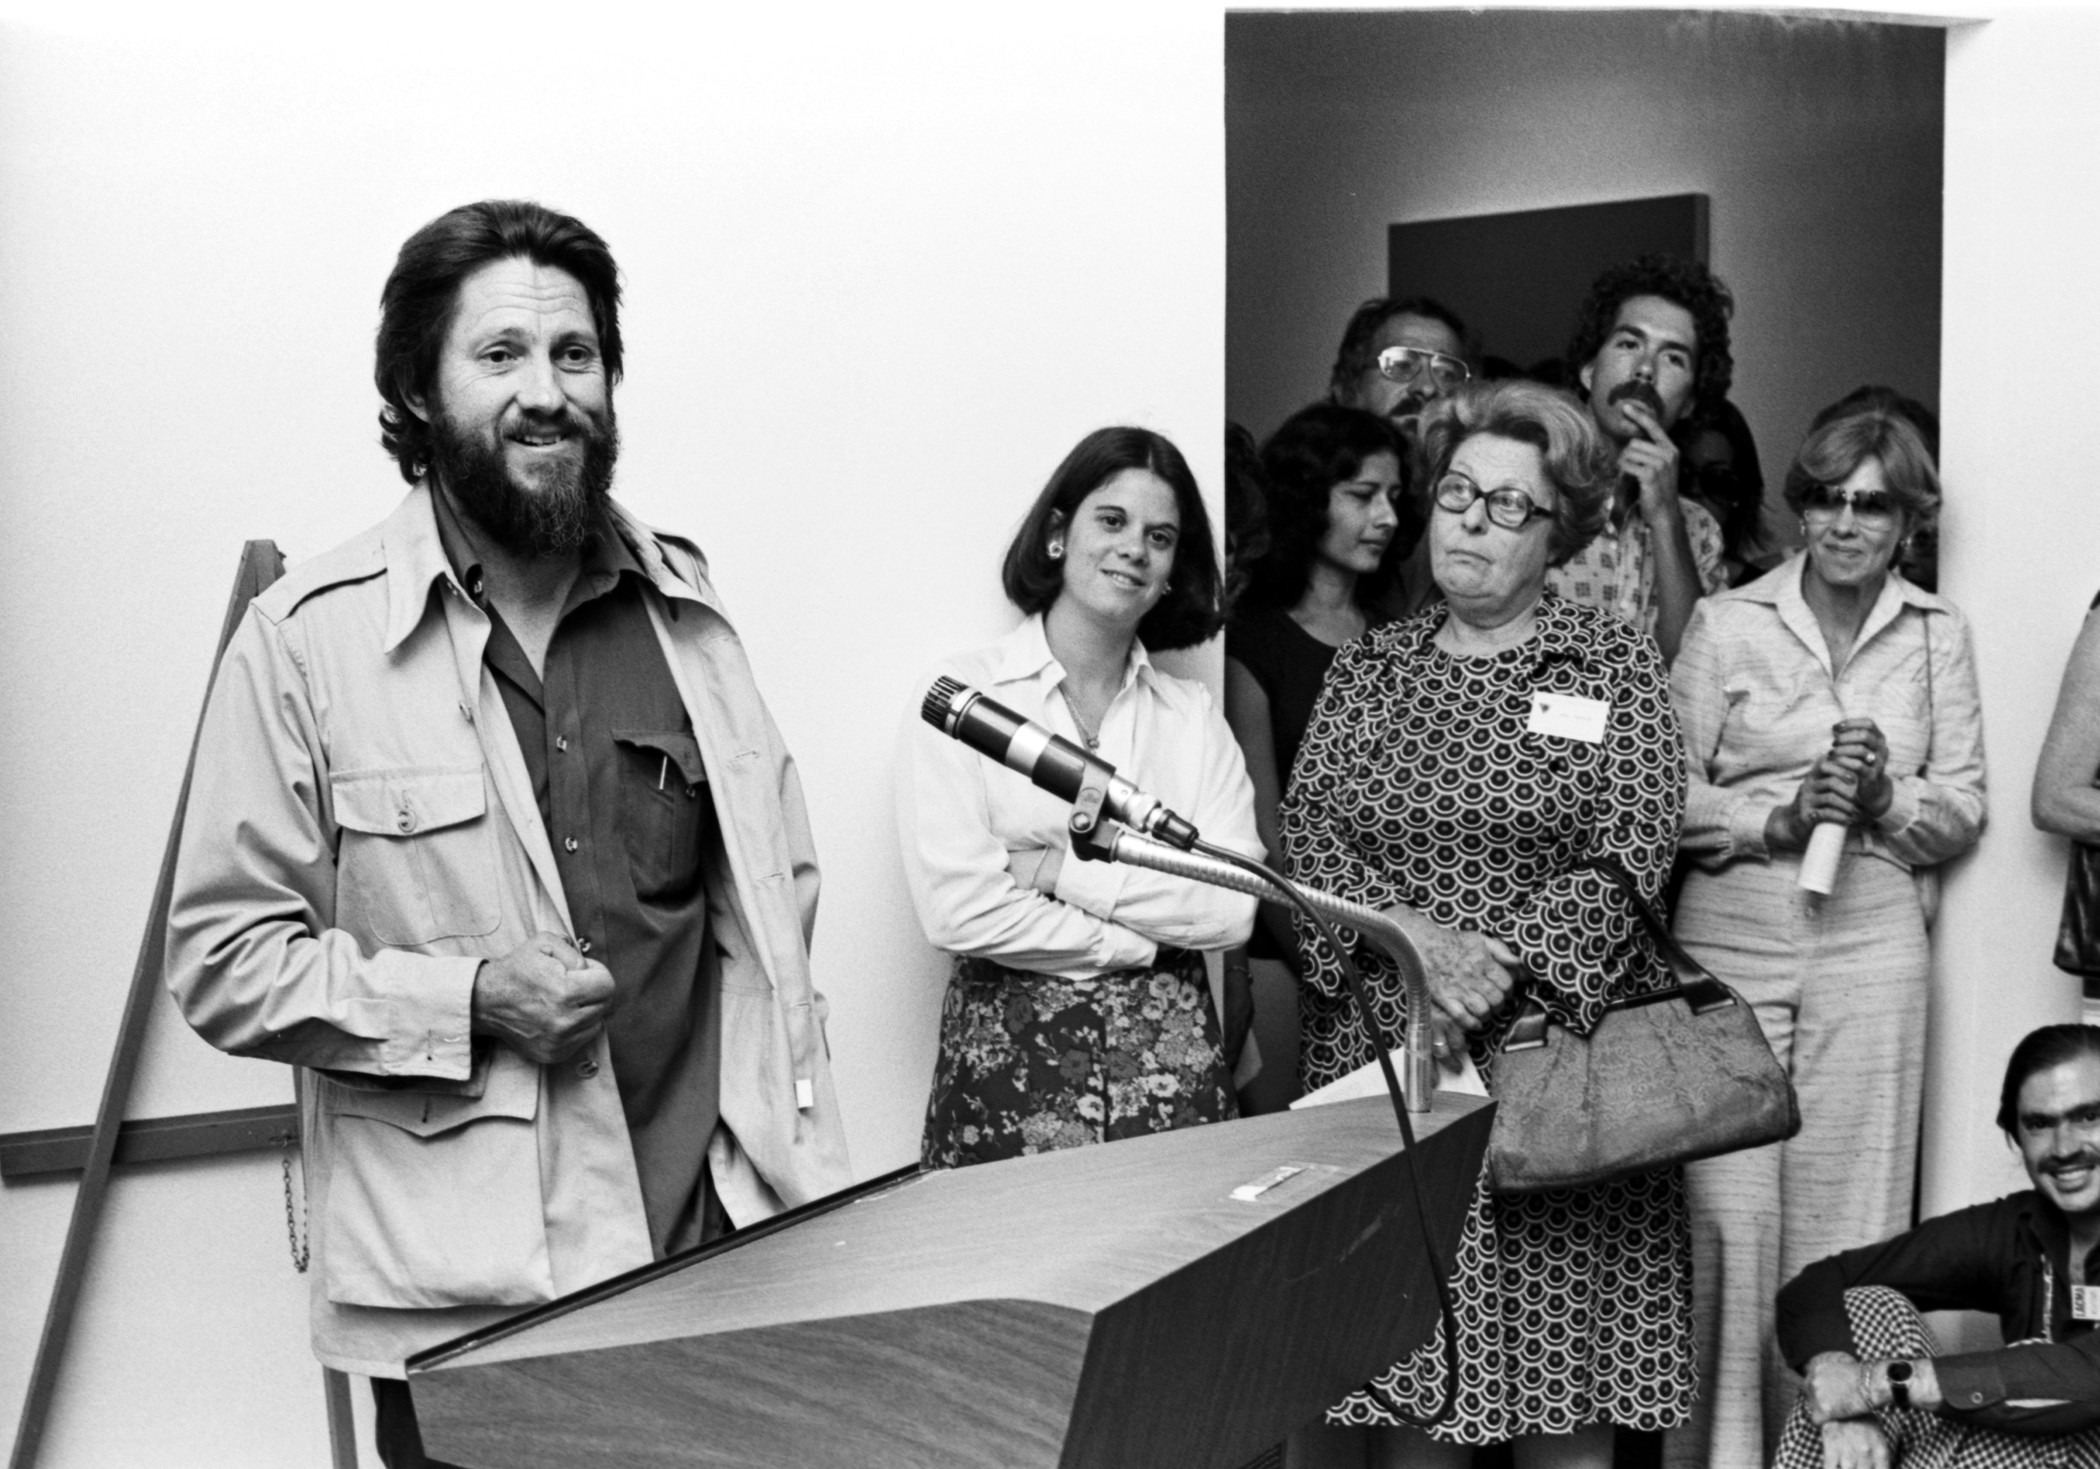 Artist Ed Moses (left), with curators Stephanie Barron (center) and Maurice Tuchman (not pictured), speaking with visitors at LACMA in 1976 on the occasion of the exhibition Ed Moses: New Paintings, photo © Museum Associates/LACMA